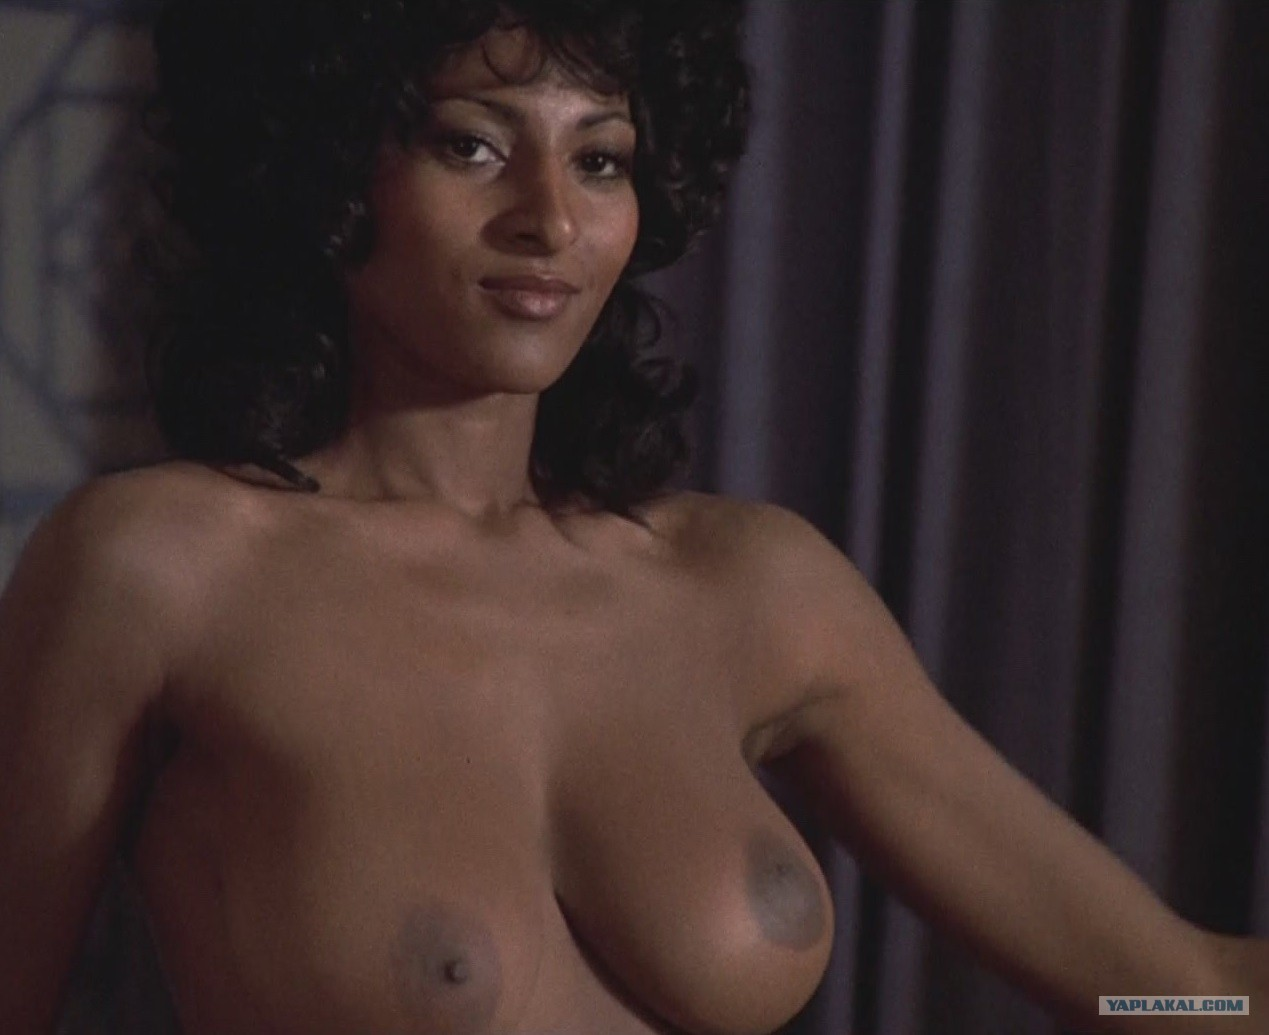 Pam grier fully naked pussy adult film